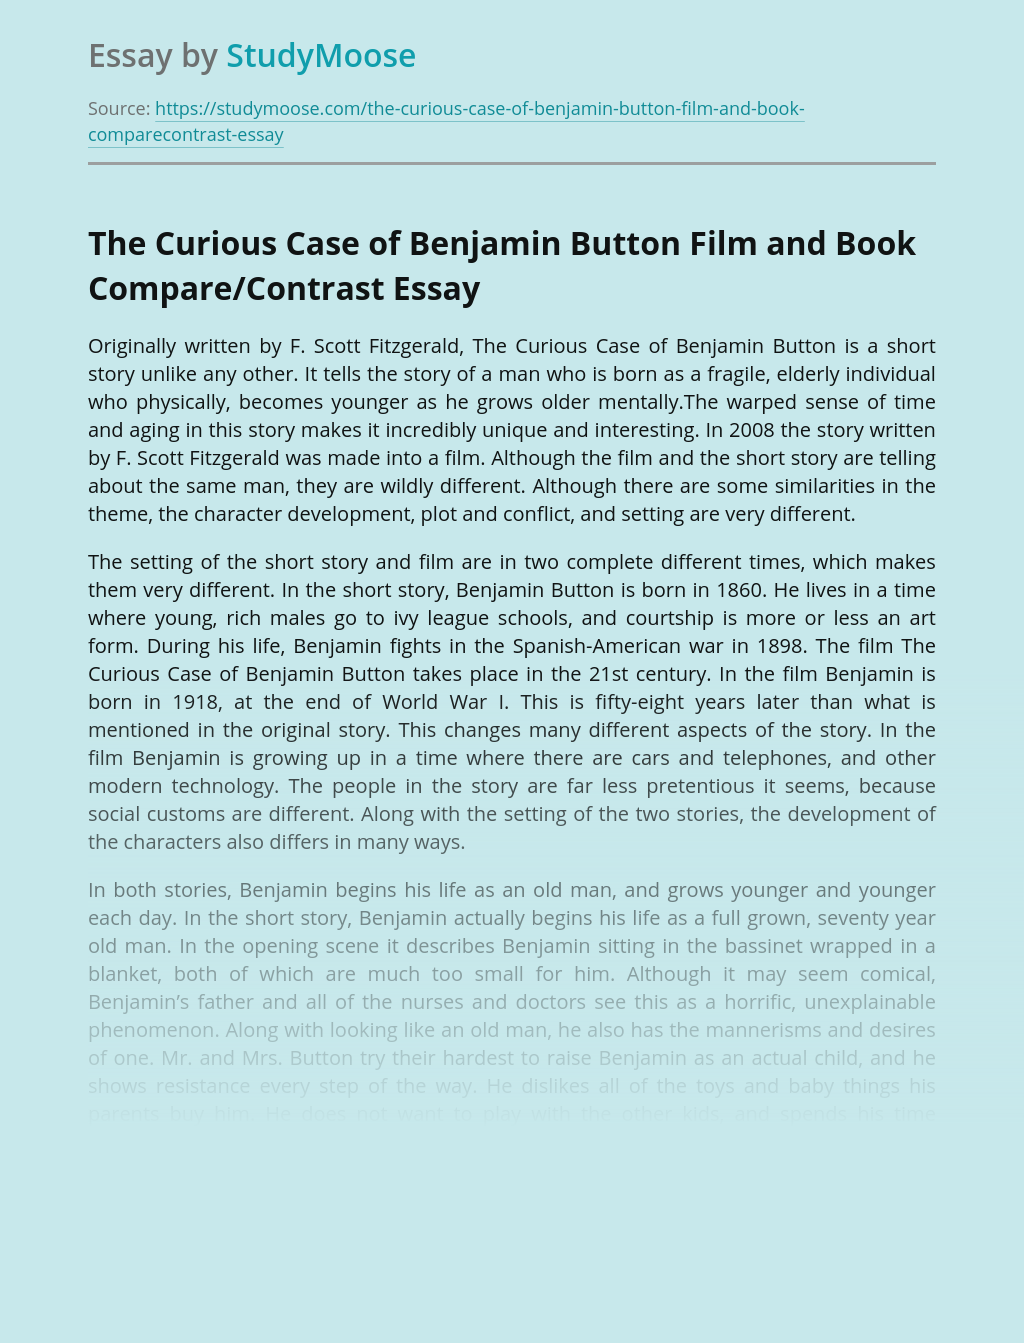 The Curious Case of Benjamin Button Film and Book Compare/Contrast